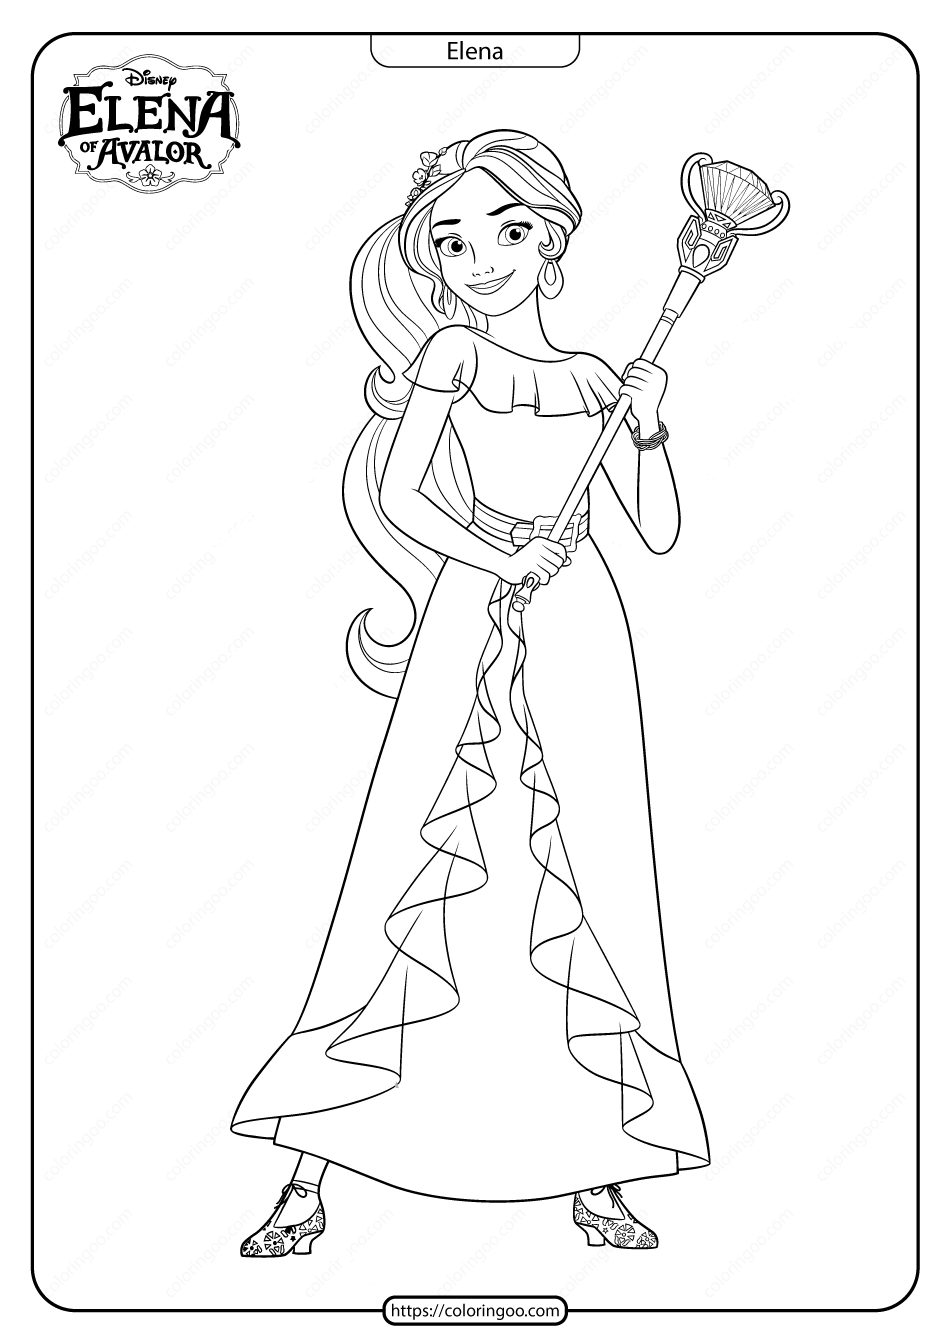 Printable Elena Of Avalor Pdf Coloring Pages Coloring Pages Disney Coloring Pages Cartoon Coloring Pages